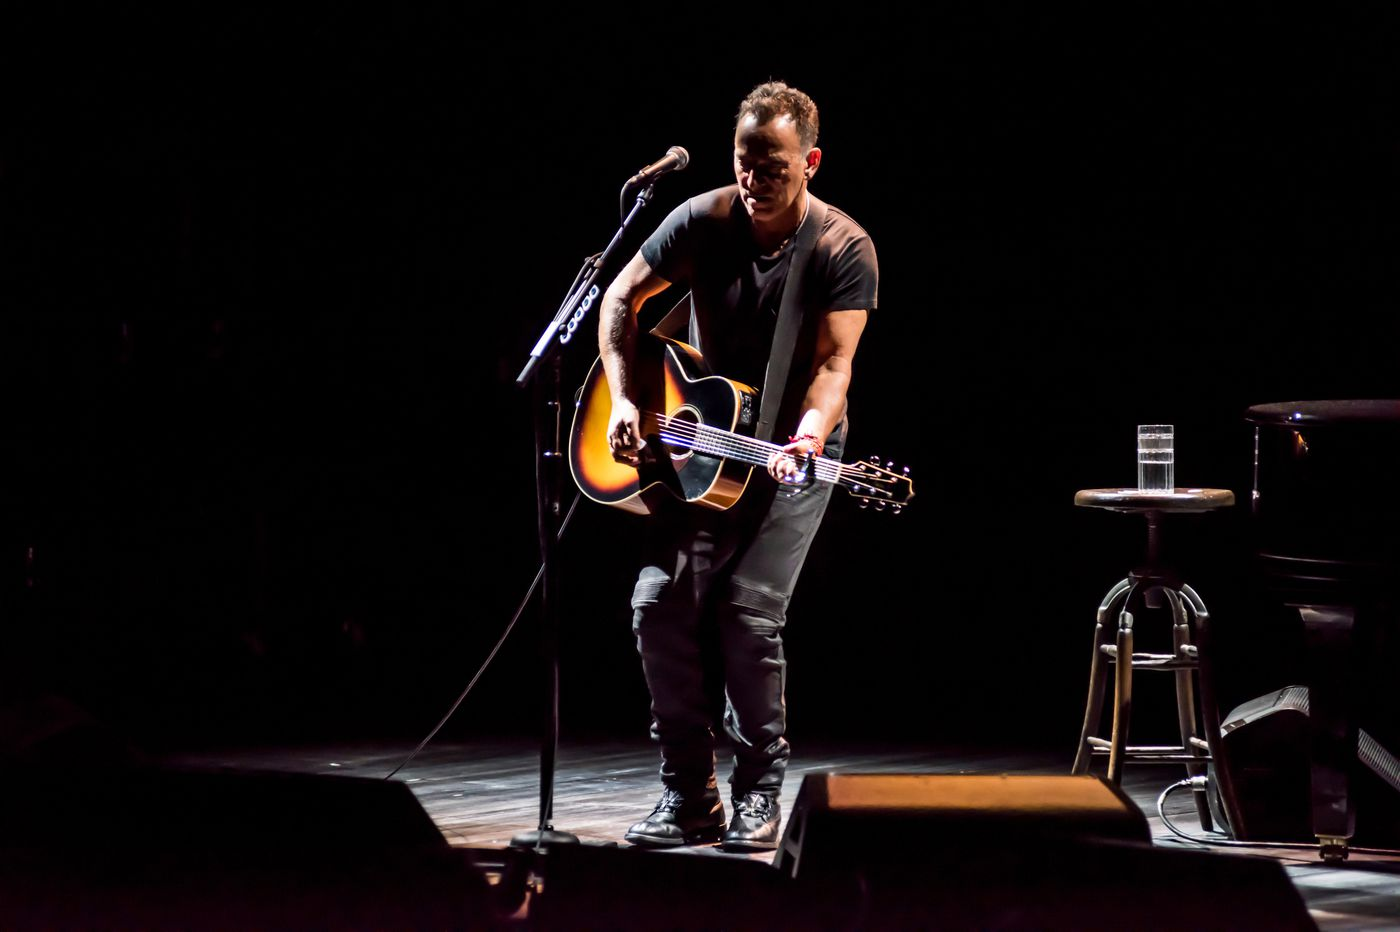 Springsteen's Broadway show coming to Netflix